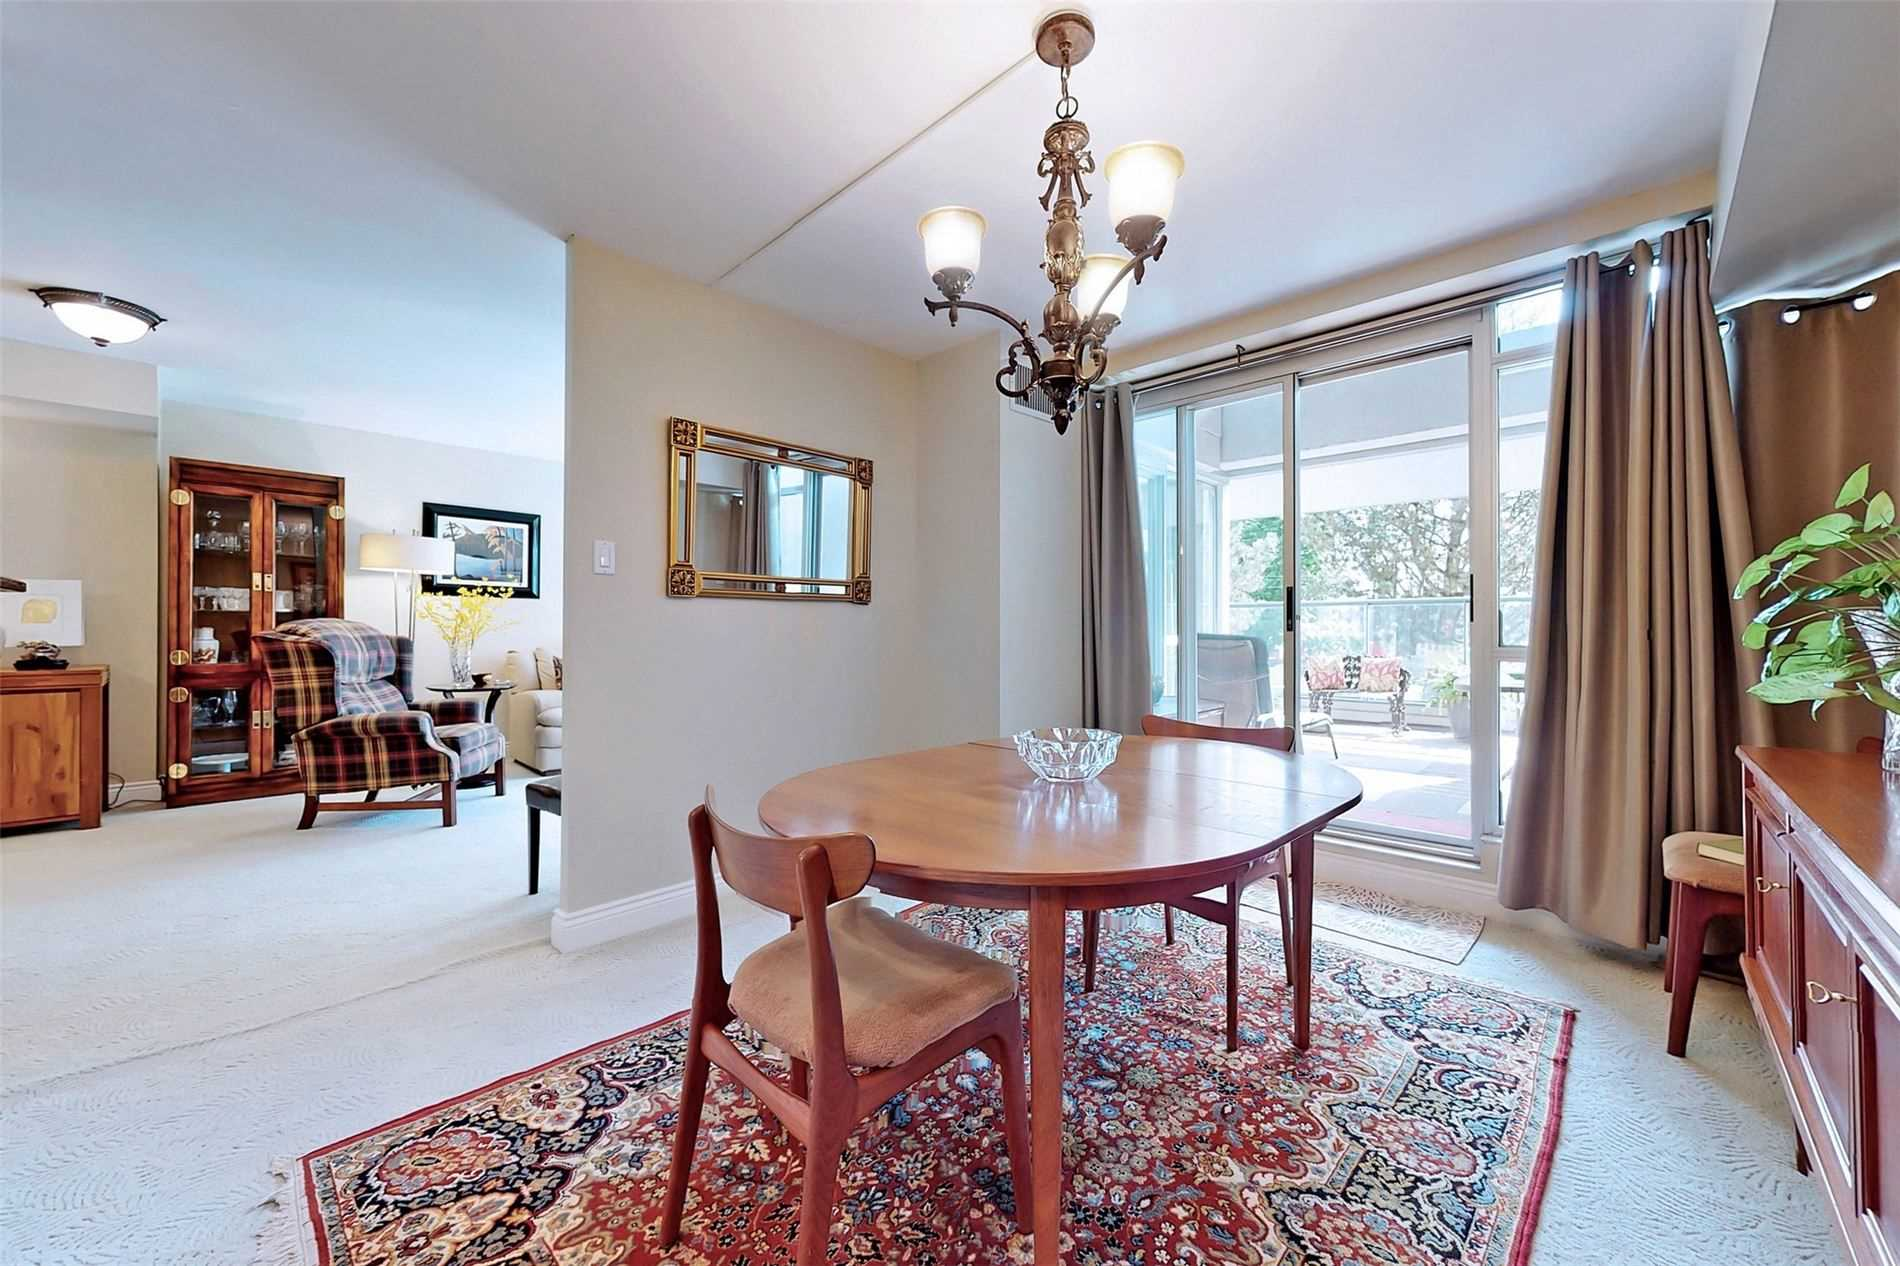 Image 7 of 40 showing inside of 2 Bedroom Condo Apt 2-Storey for Sale at 25 Cumberland Lane Unit# 105, Ajax L1S7K1